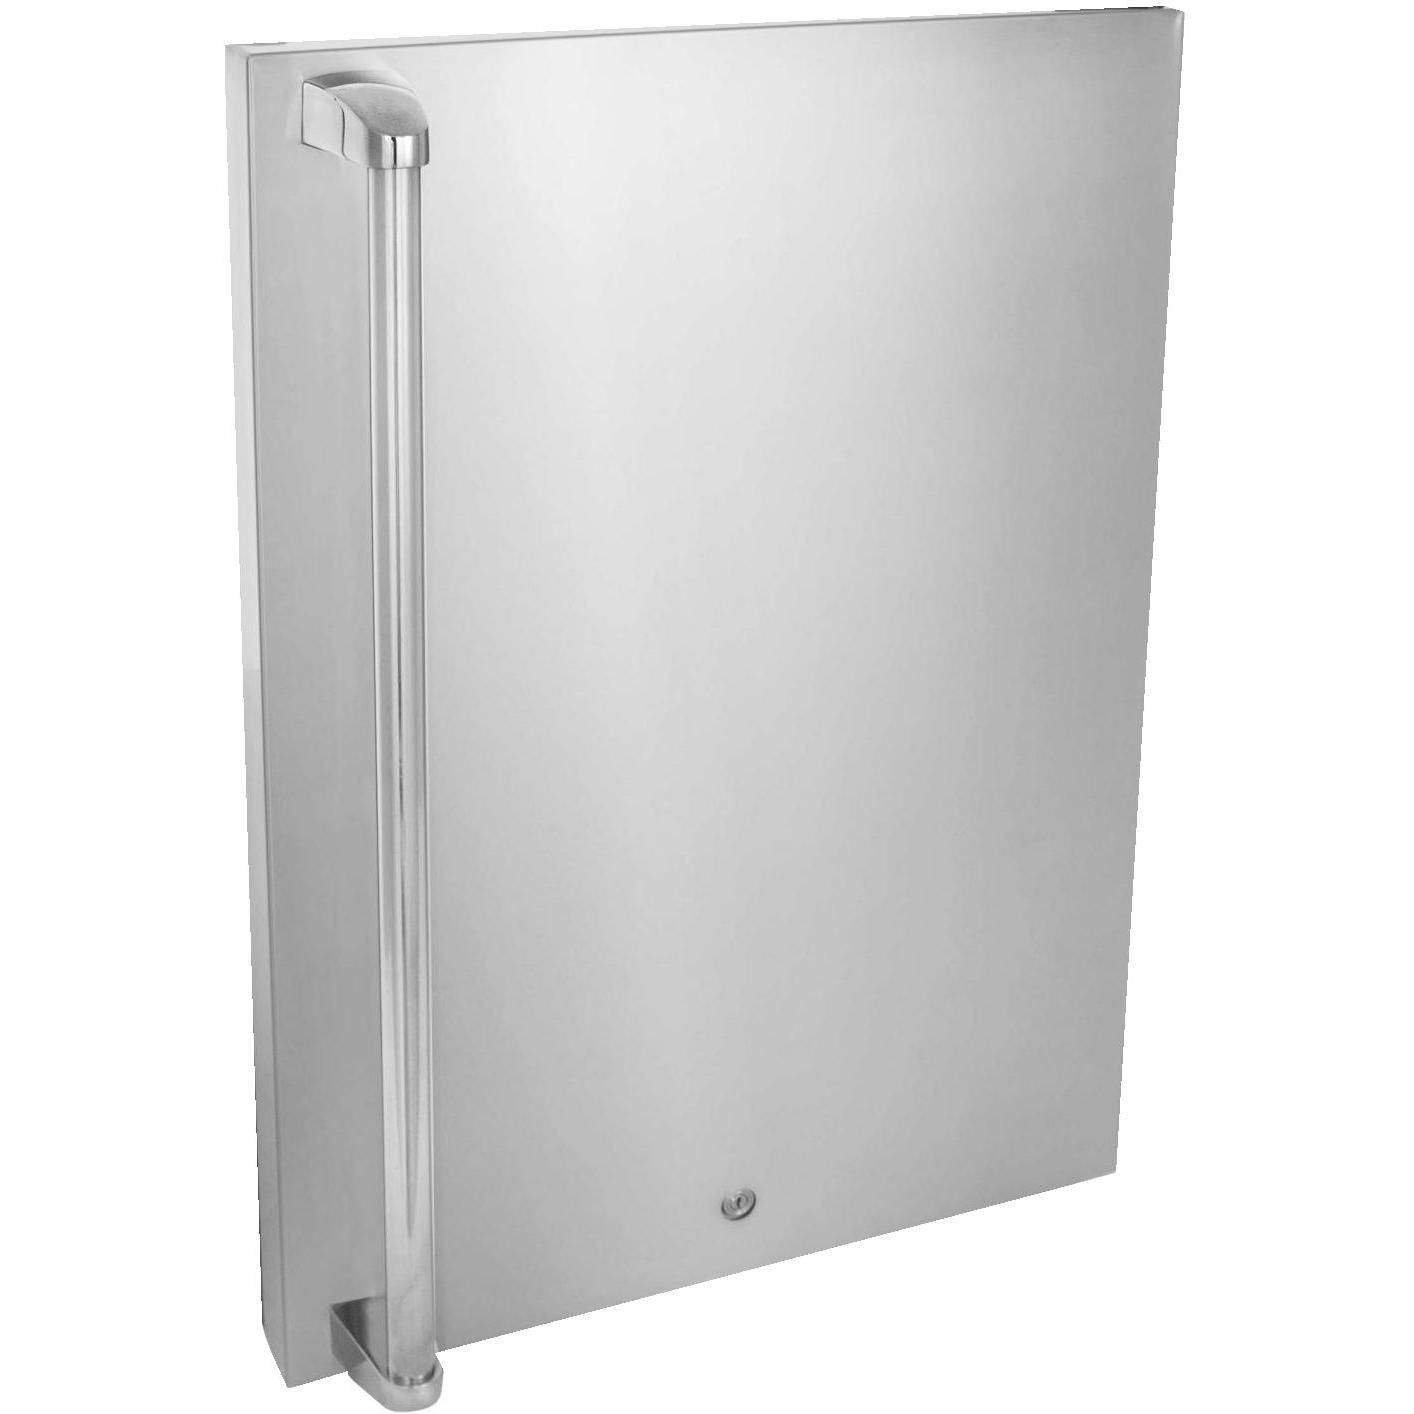 Blaze Right Hinged Stainless Steel Door Upgrade (BLZ-SSFP-4-5) by Blaze (Image #1)